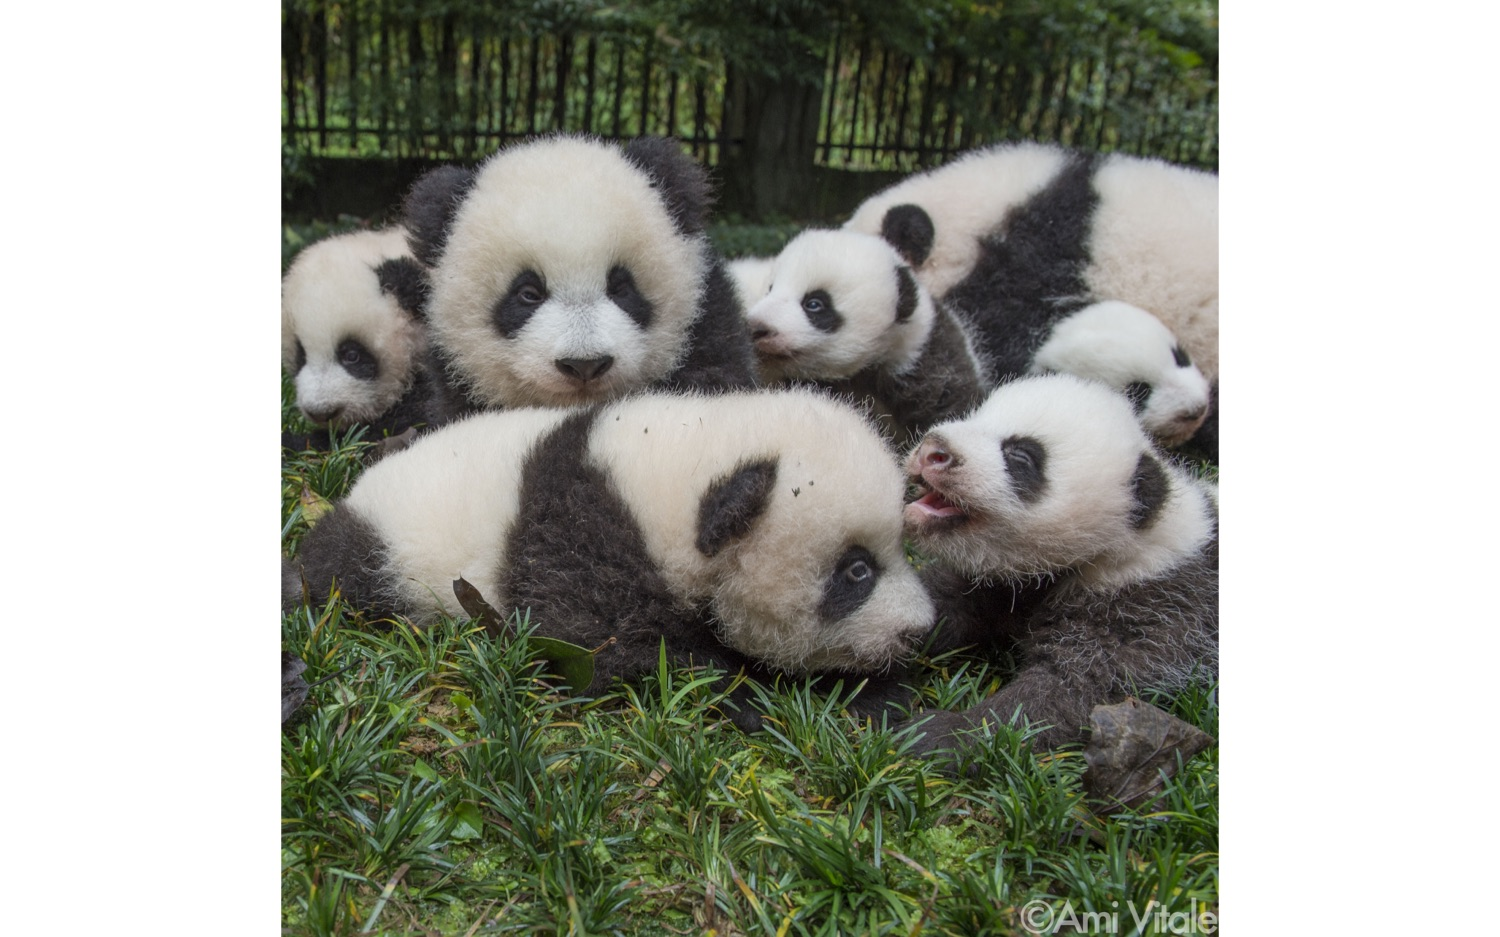 pandas from the book Panda Love by Ami Vitale